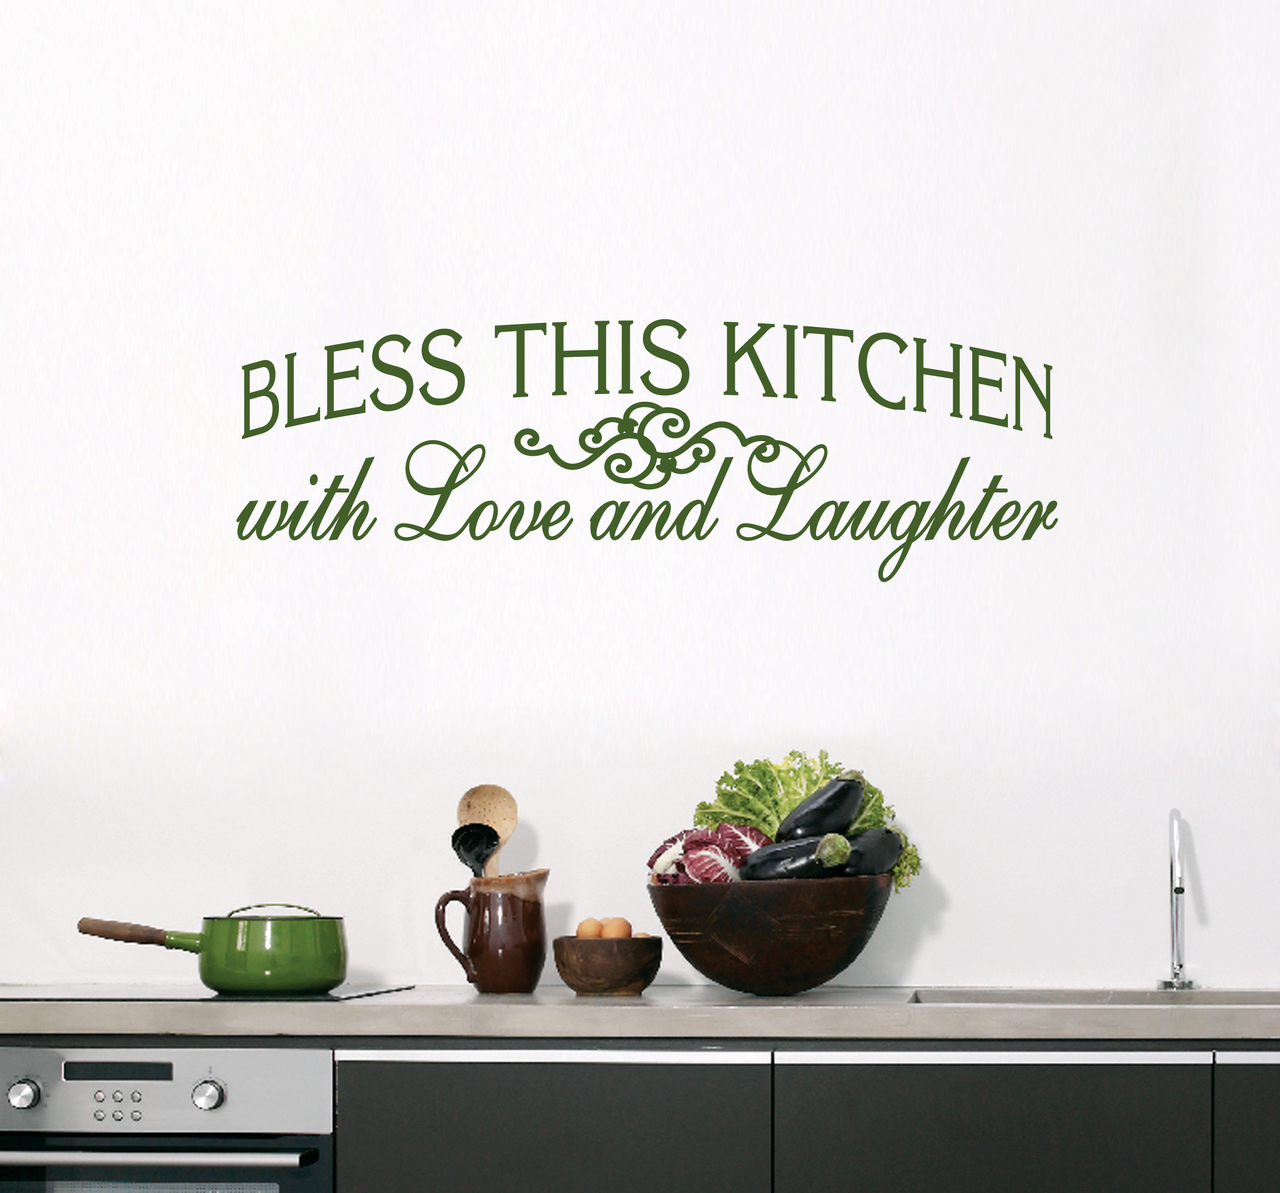 Bless this kitchen wall decals wall art wall murals bless this kitchen wall decals 50 wide x 16 tall sample image amipublicfo Choice Image